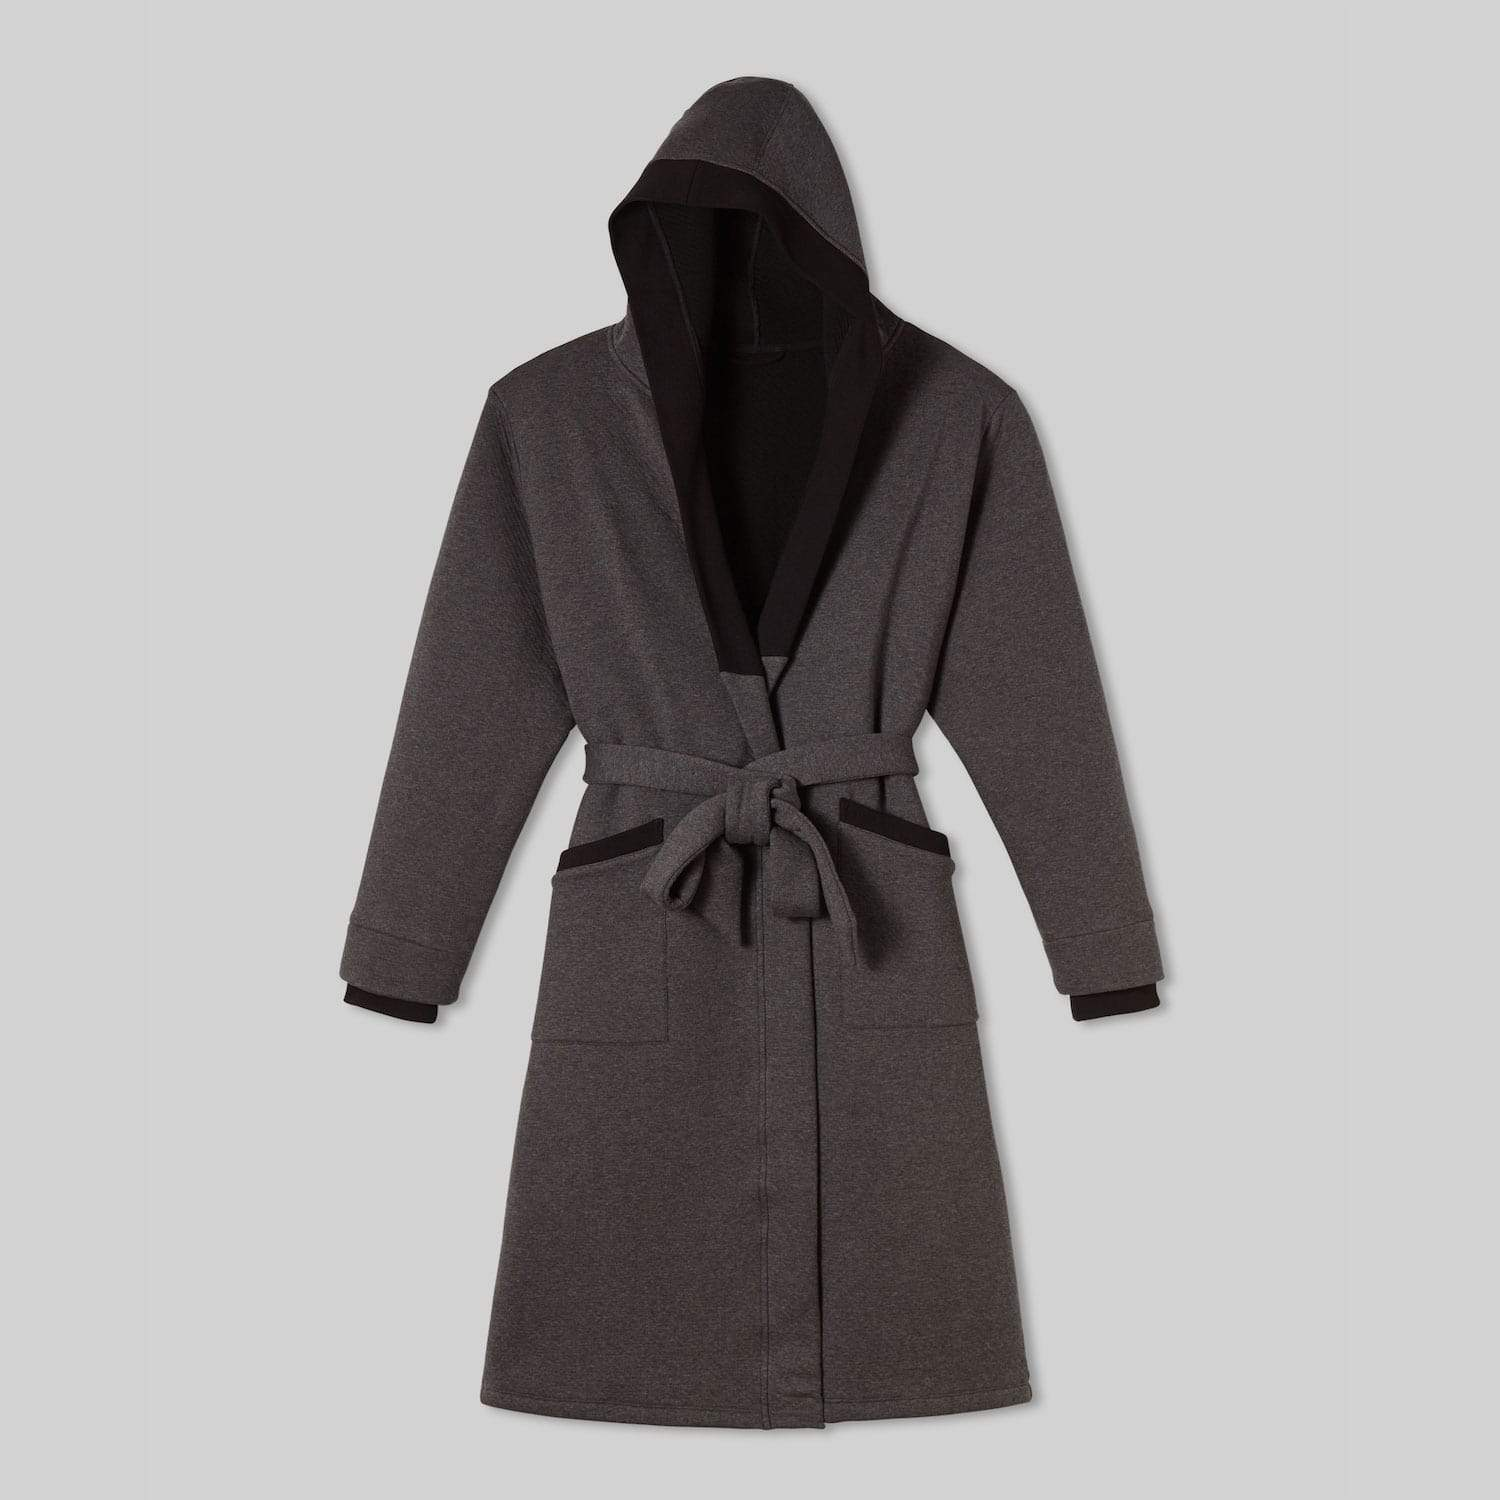 Lahgo Sleepwear Restore Double Faced Robe - #Charcoal/Black